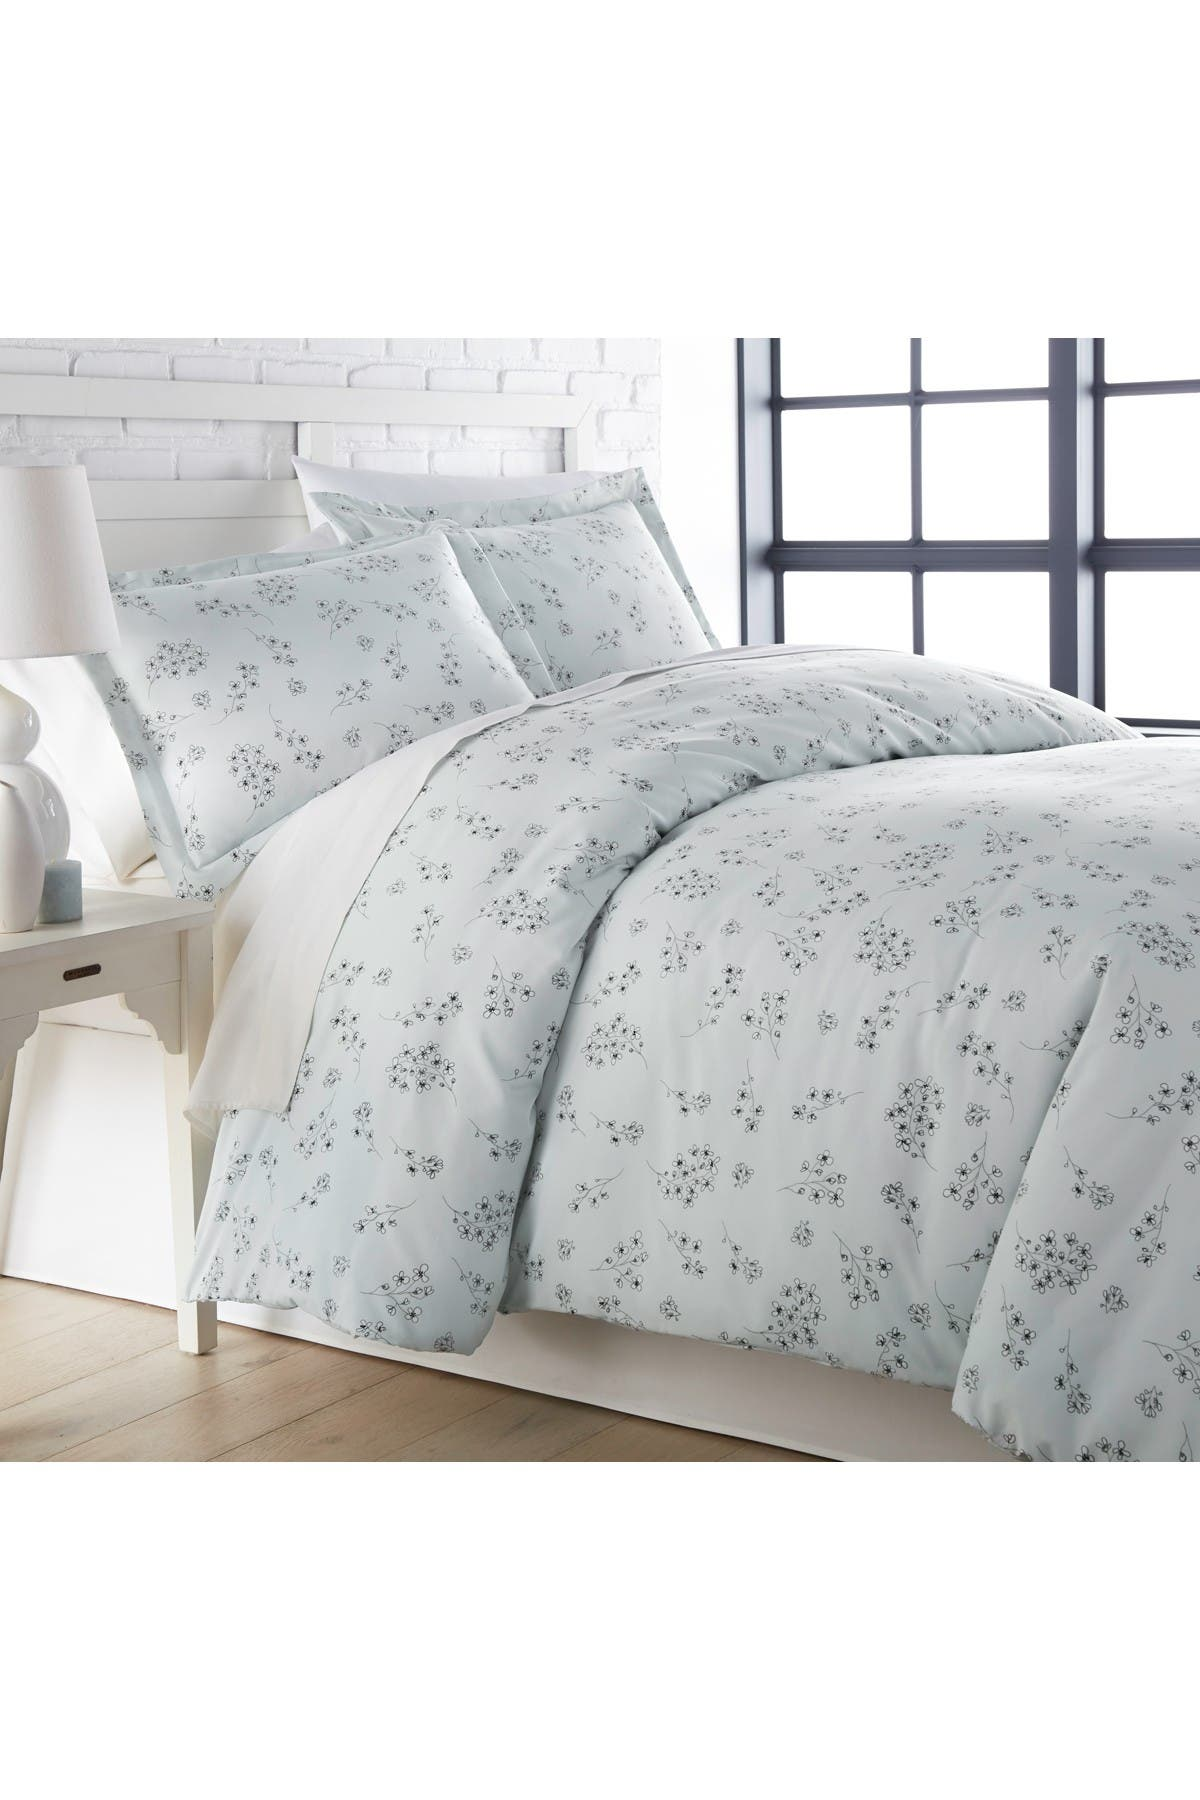 Image of SOUTHSHORE FINE LINENS King/California King Luxury Collection Premium Oversized Duvet Cover Set - Blue